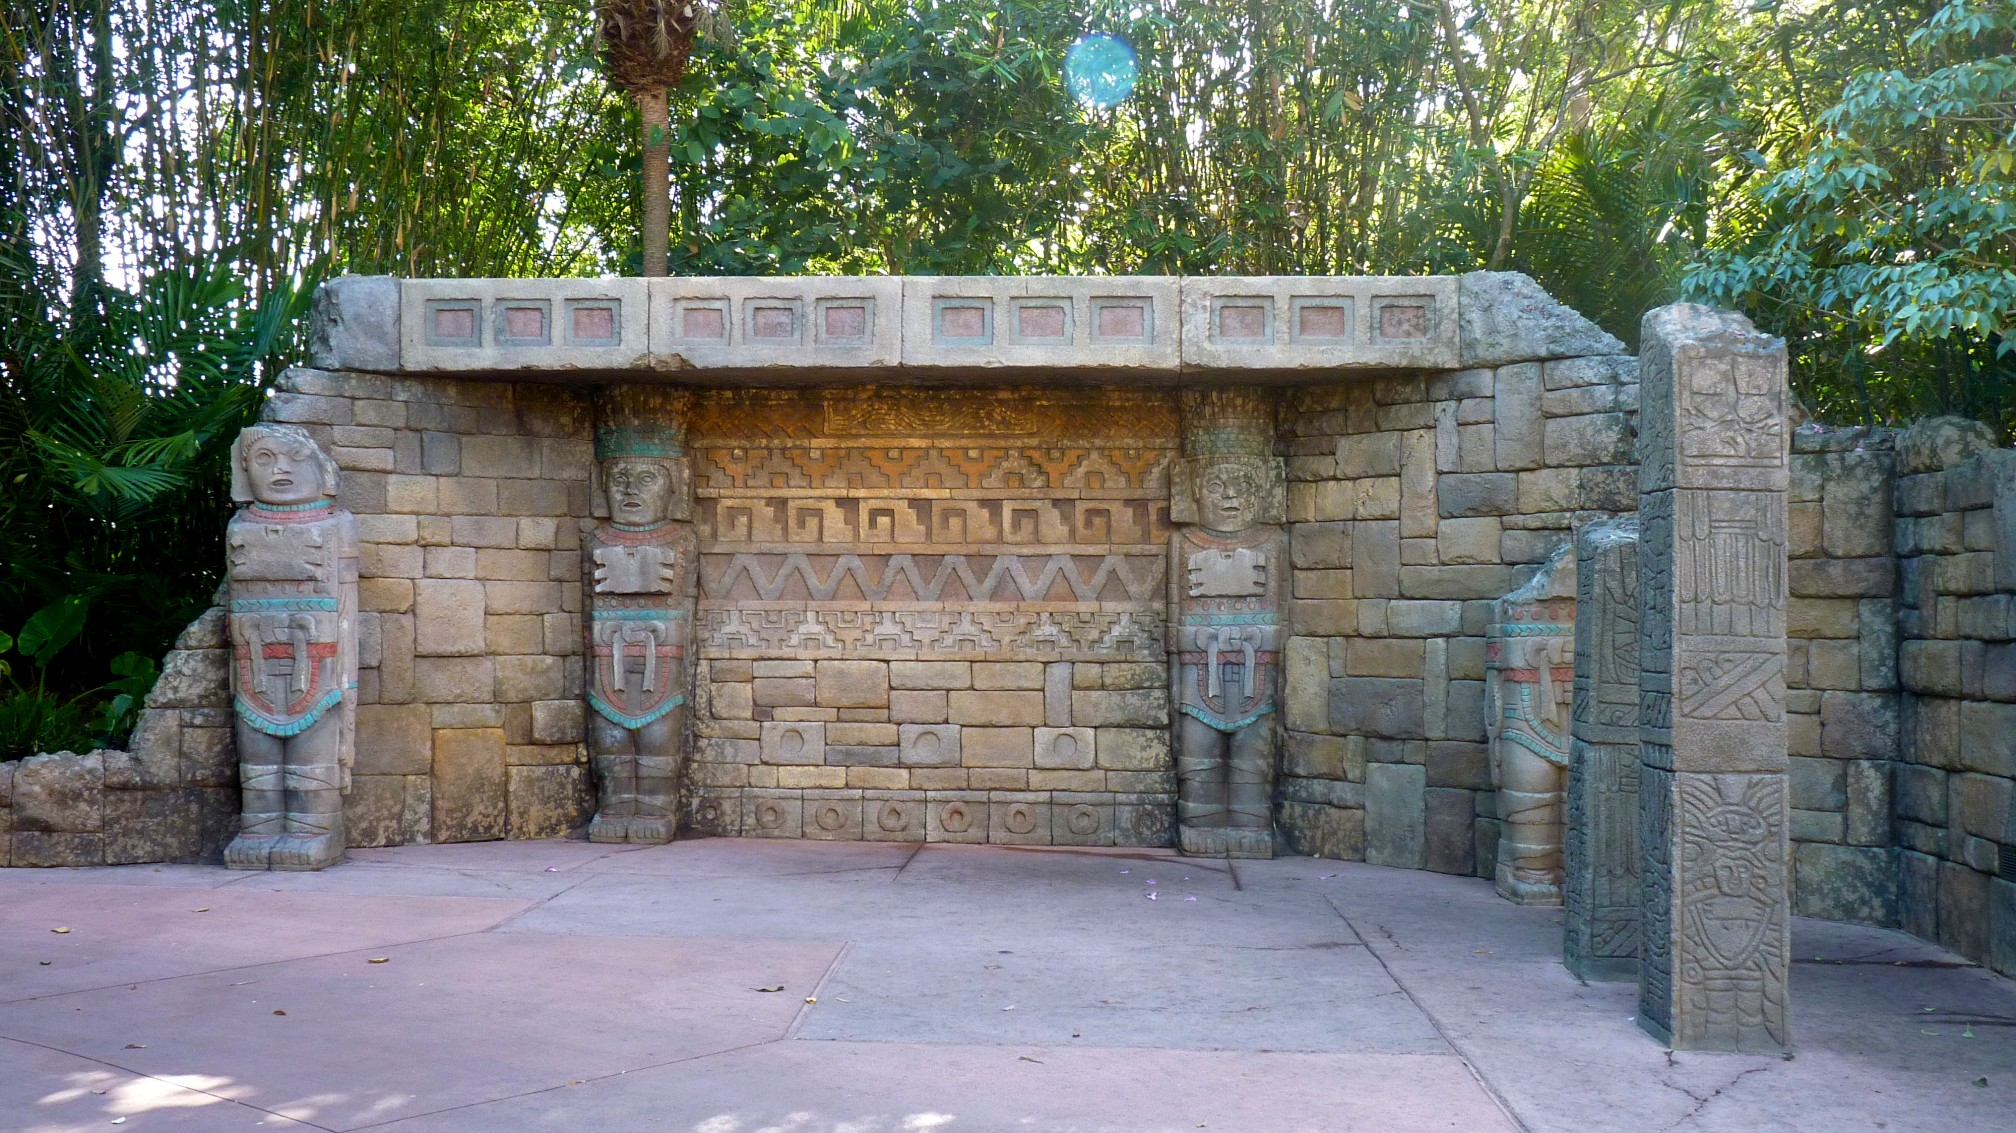 Jud's Disney Picture of the Day: THE WALL